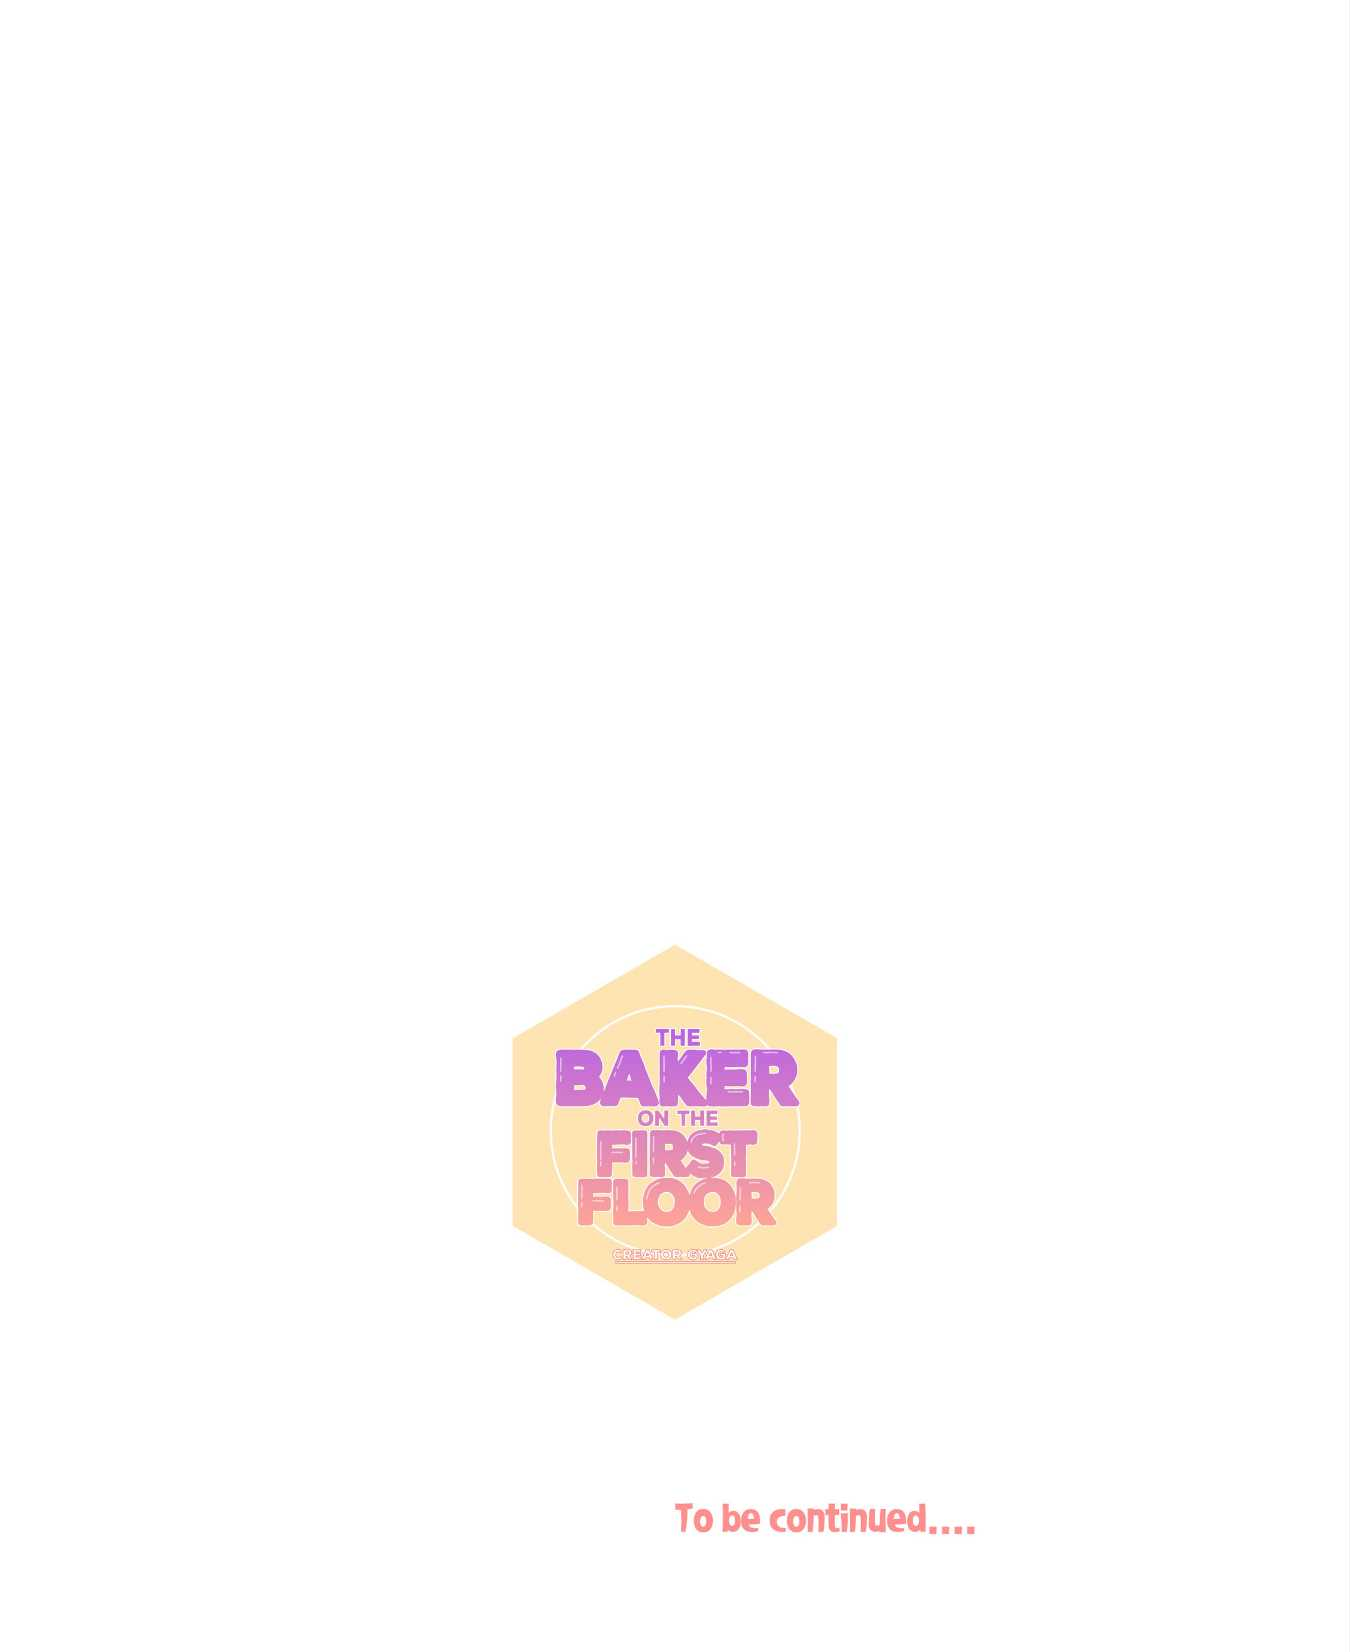 The Baker on the First Floor - Chapter 7